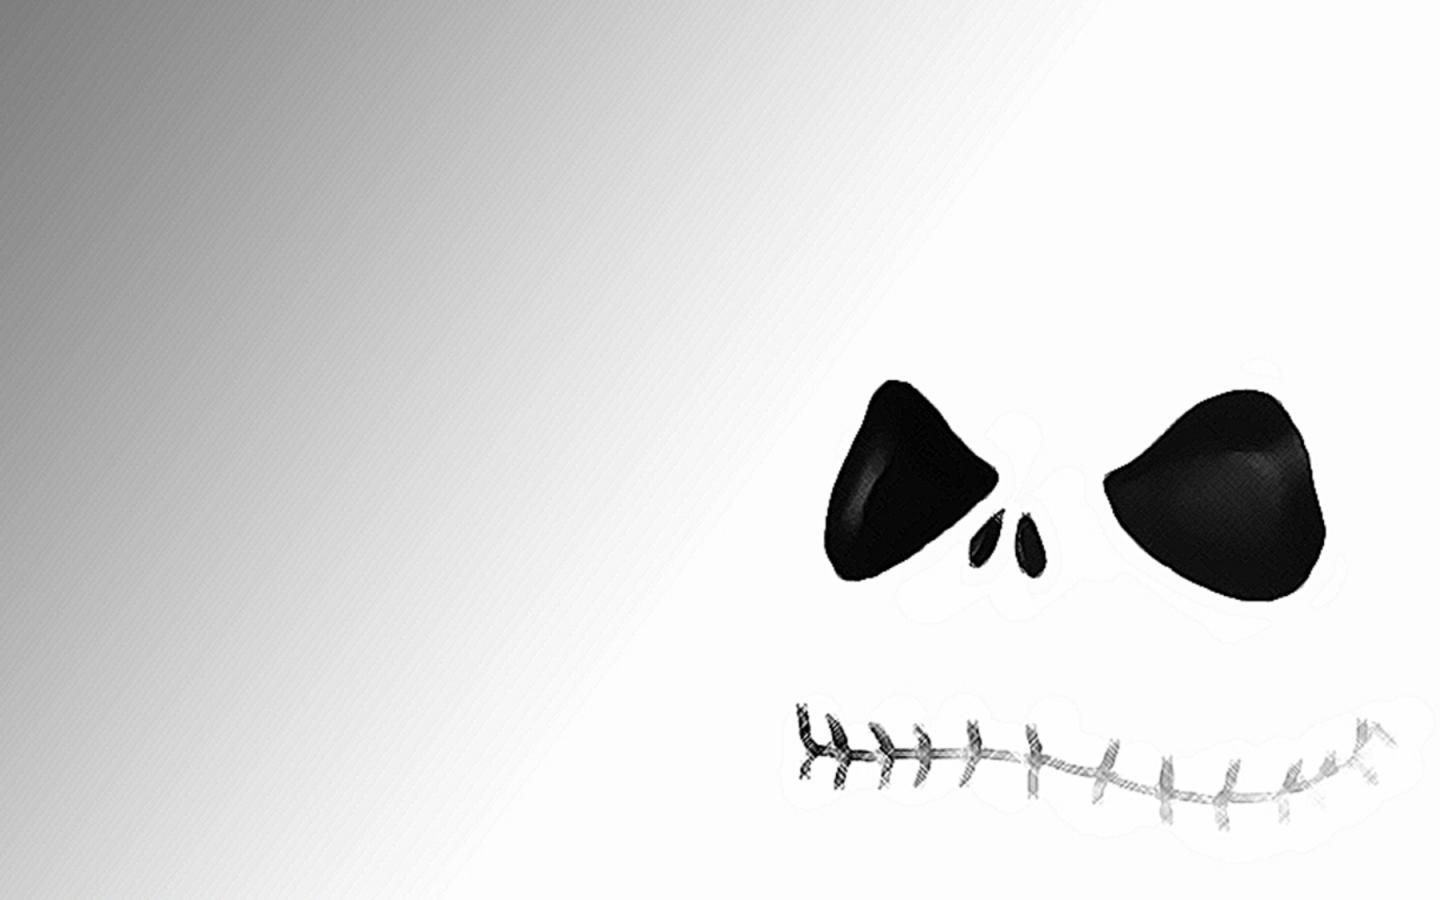 The Nightmare Before Christmas wallpapers 1440x900 desktop backgrounds